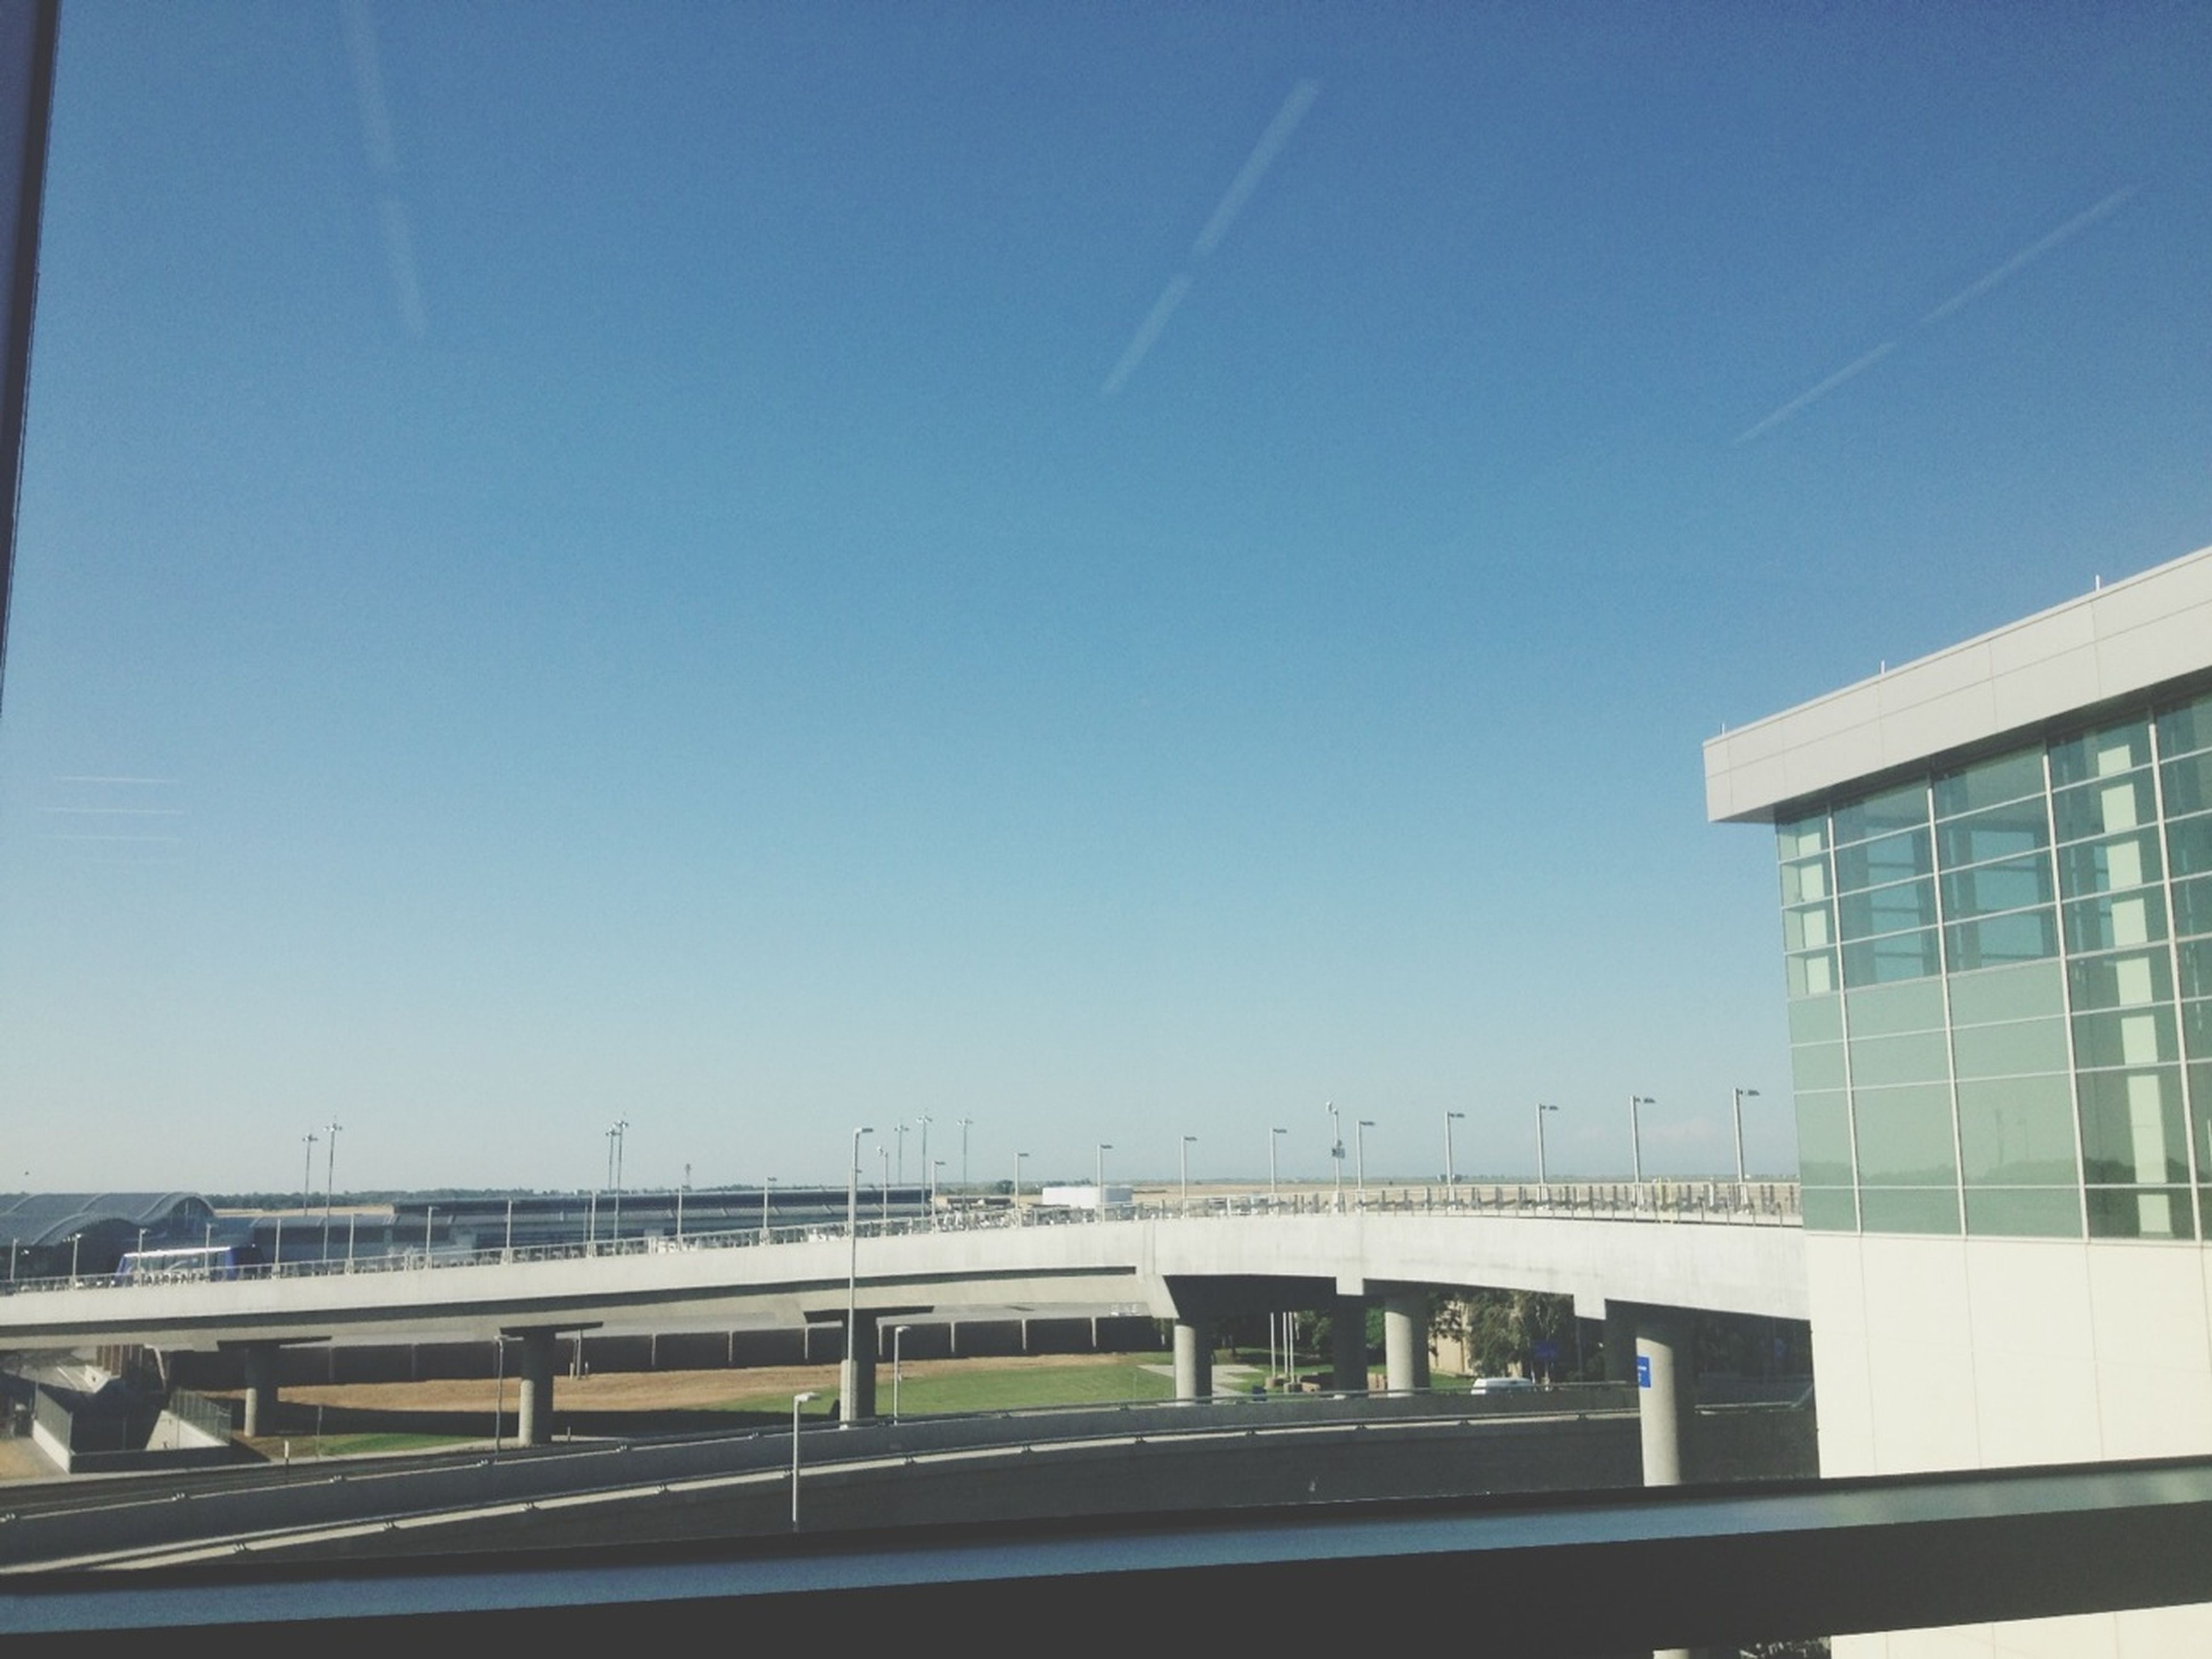 architecture, built structure, clear sky, building exterior, copy space, transportation, blue, city, connection, bridge - man made structure, railing, low angle view, modern, bridge, glass - material, building, road, day, sky, window